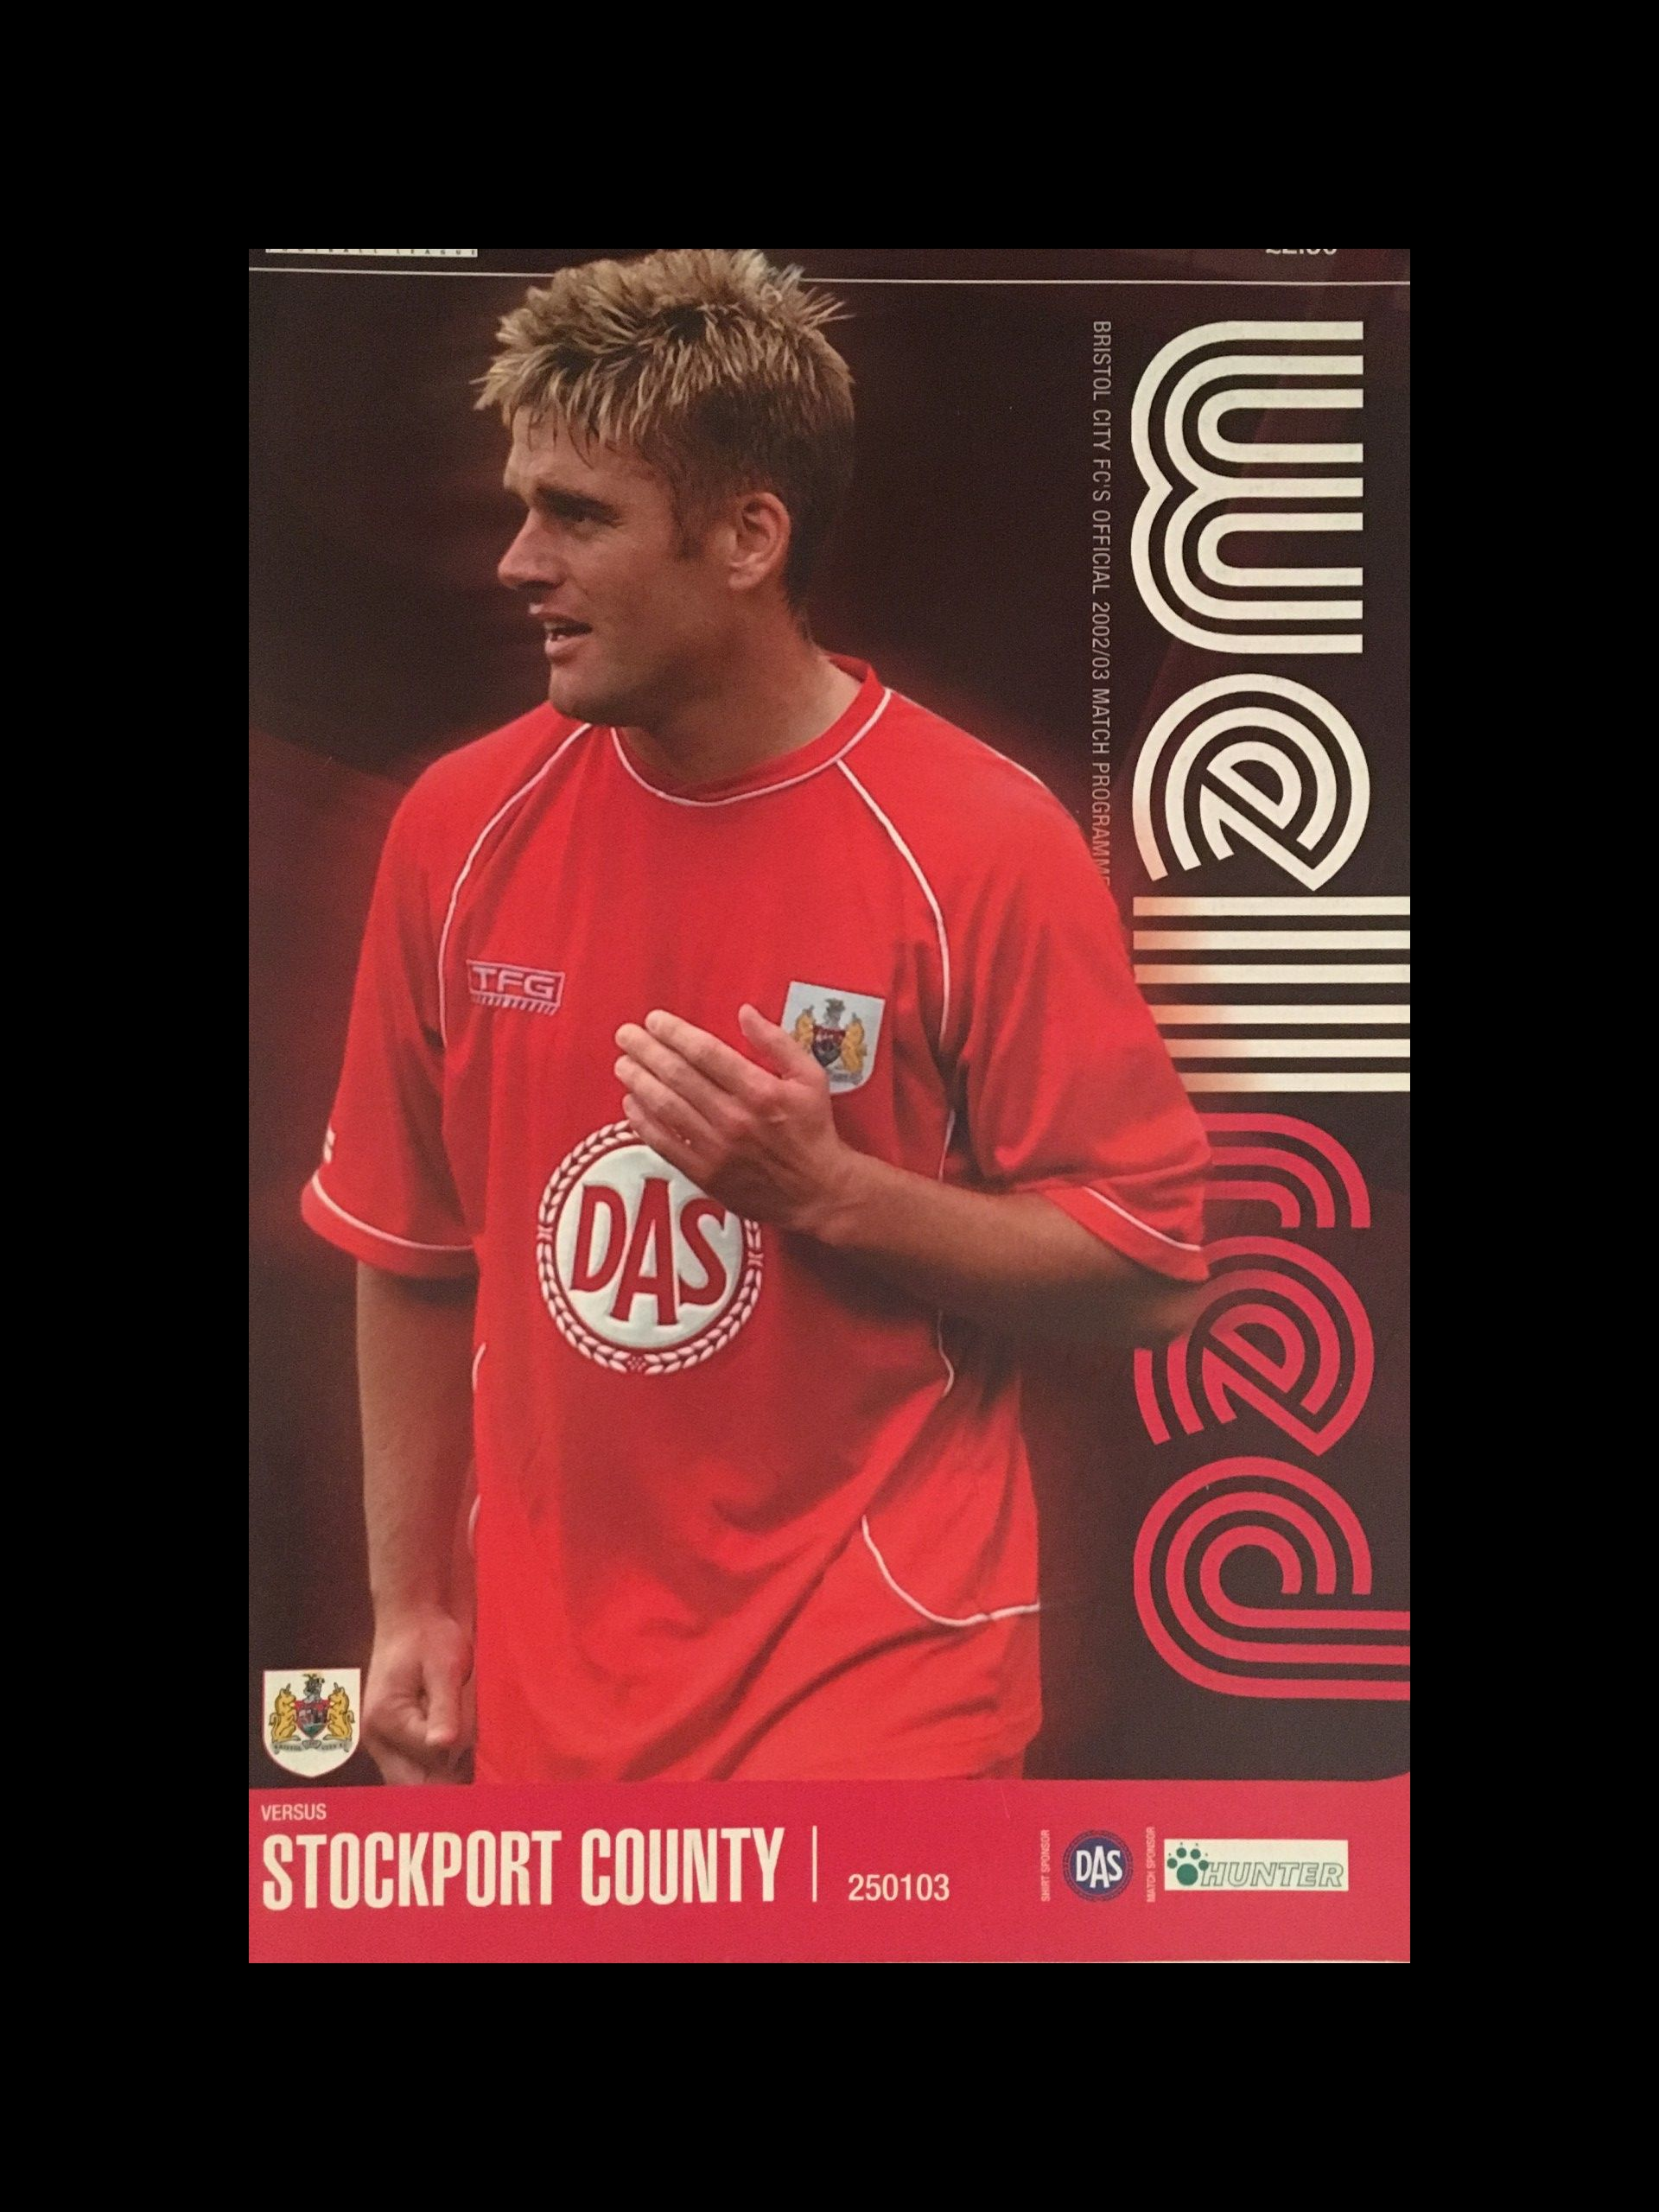 Bristol City v Stockport County 25-01-2003 Programme